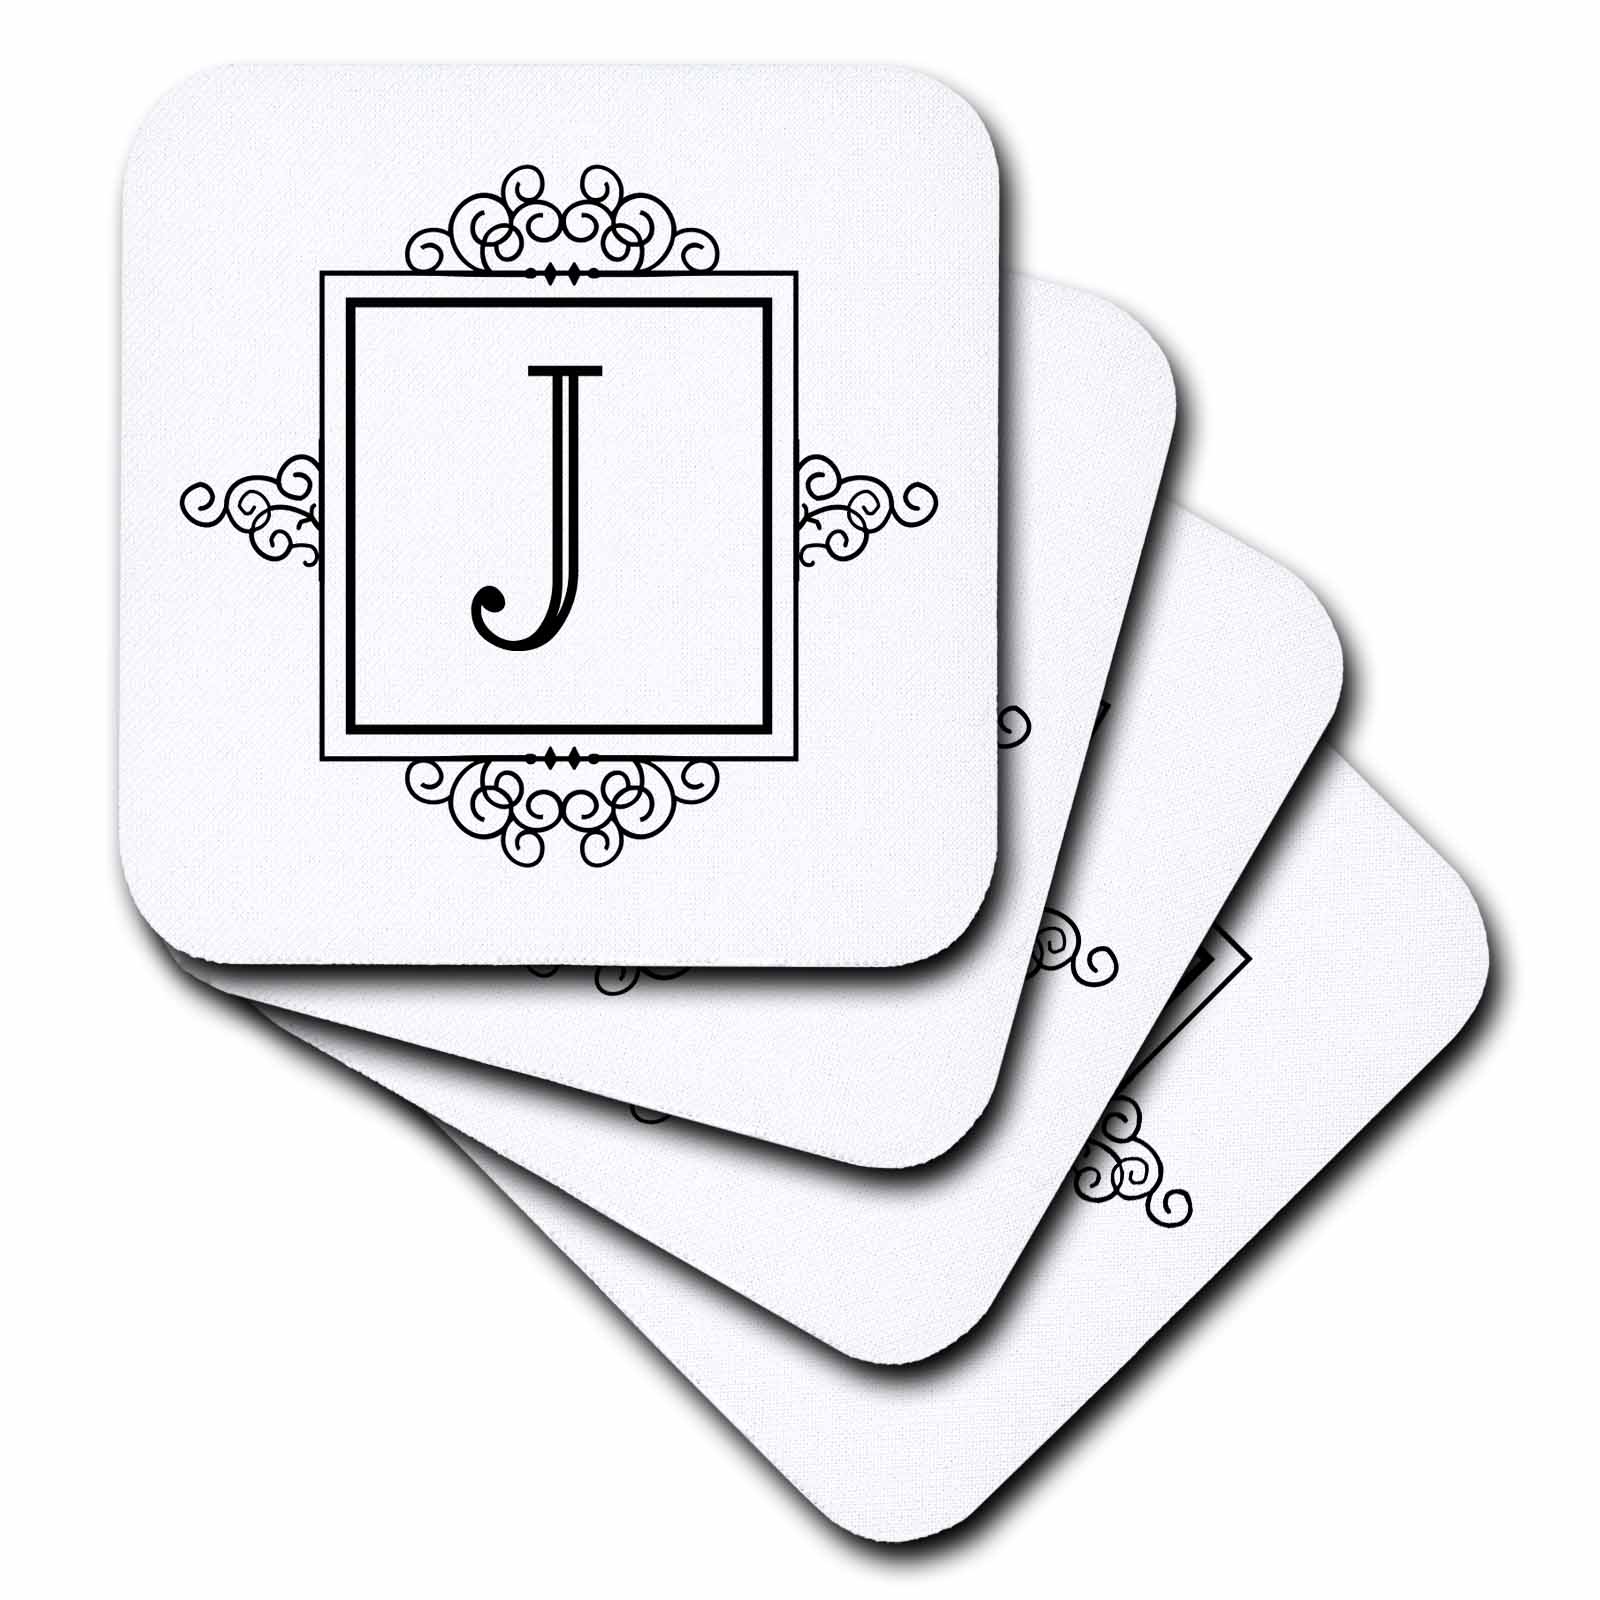 3dRose Initial letter J personal monogrammed fancy black and white typography elegant stylish personalized, Ceramic Tile Coasters, set of 4